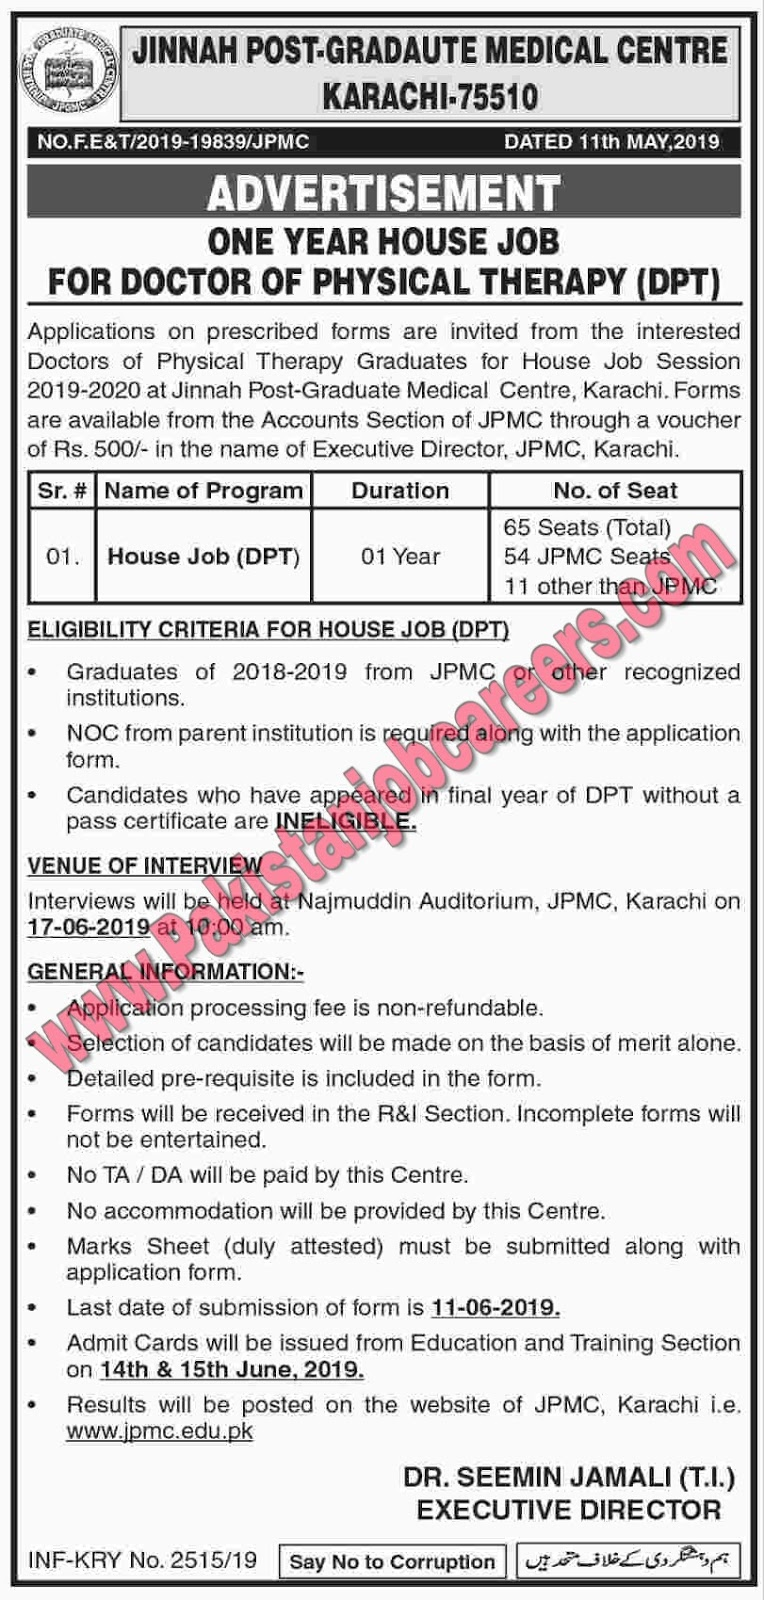 Jinnah Post-Graduate Medical Centre House Job Training Program 2019 Latest